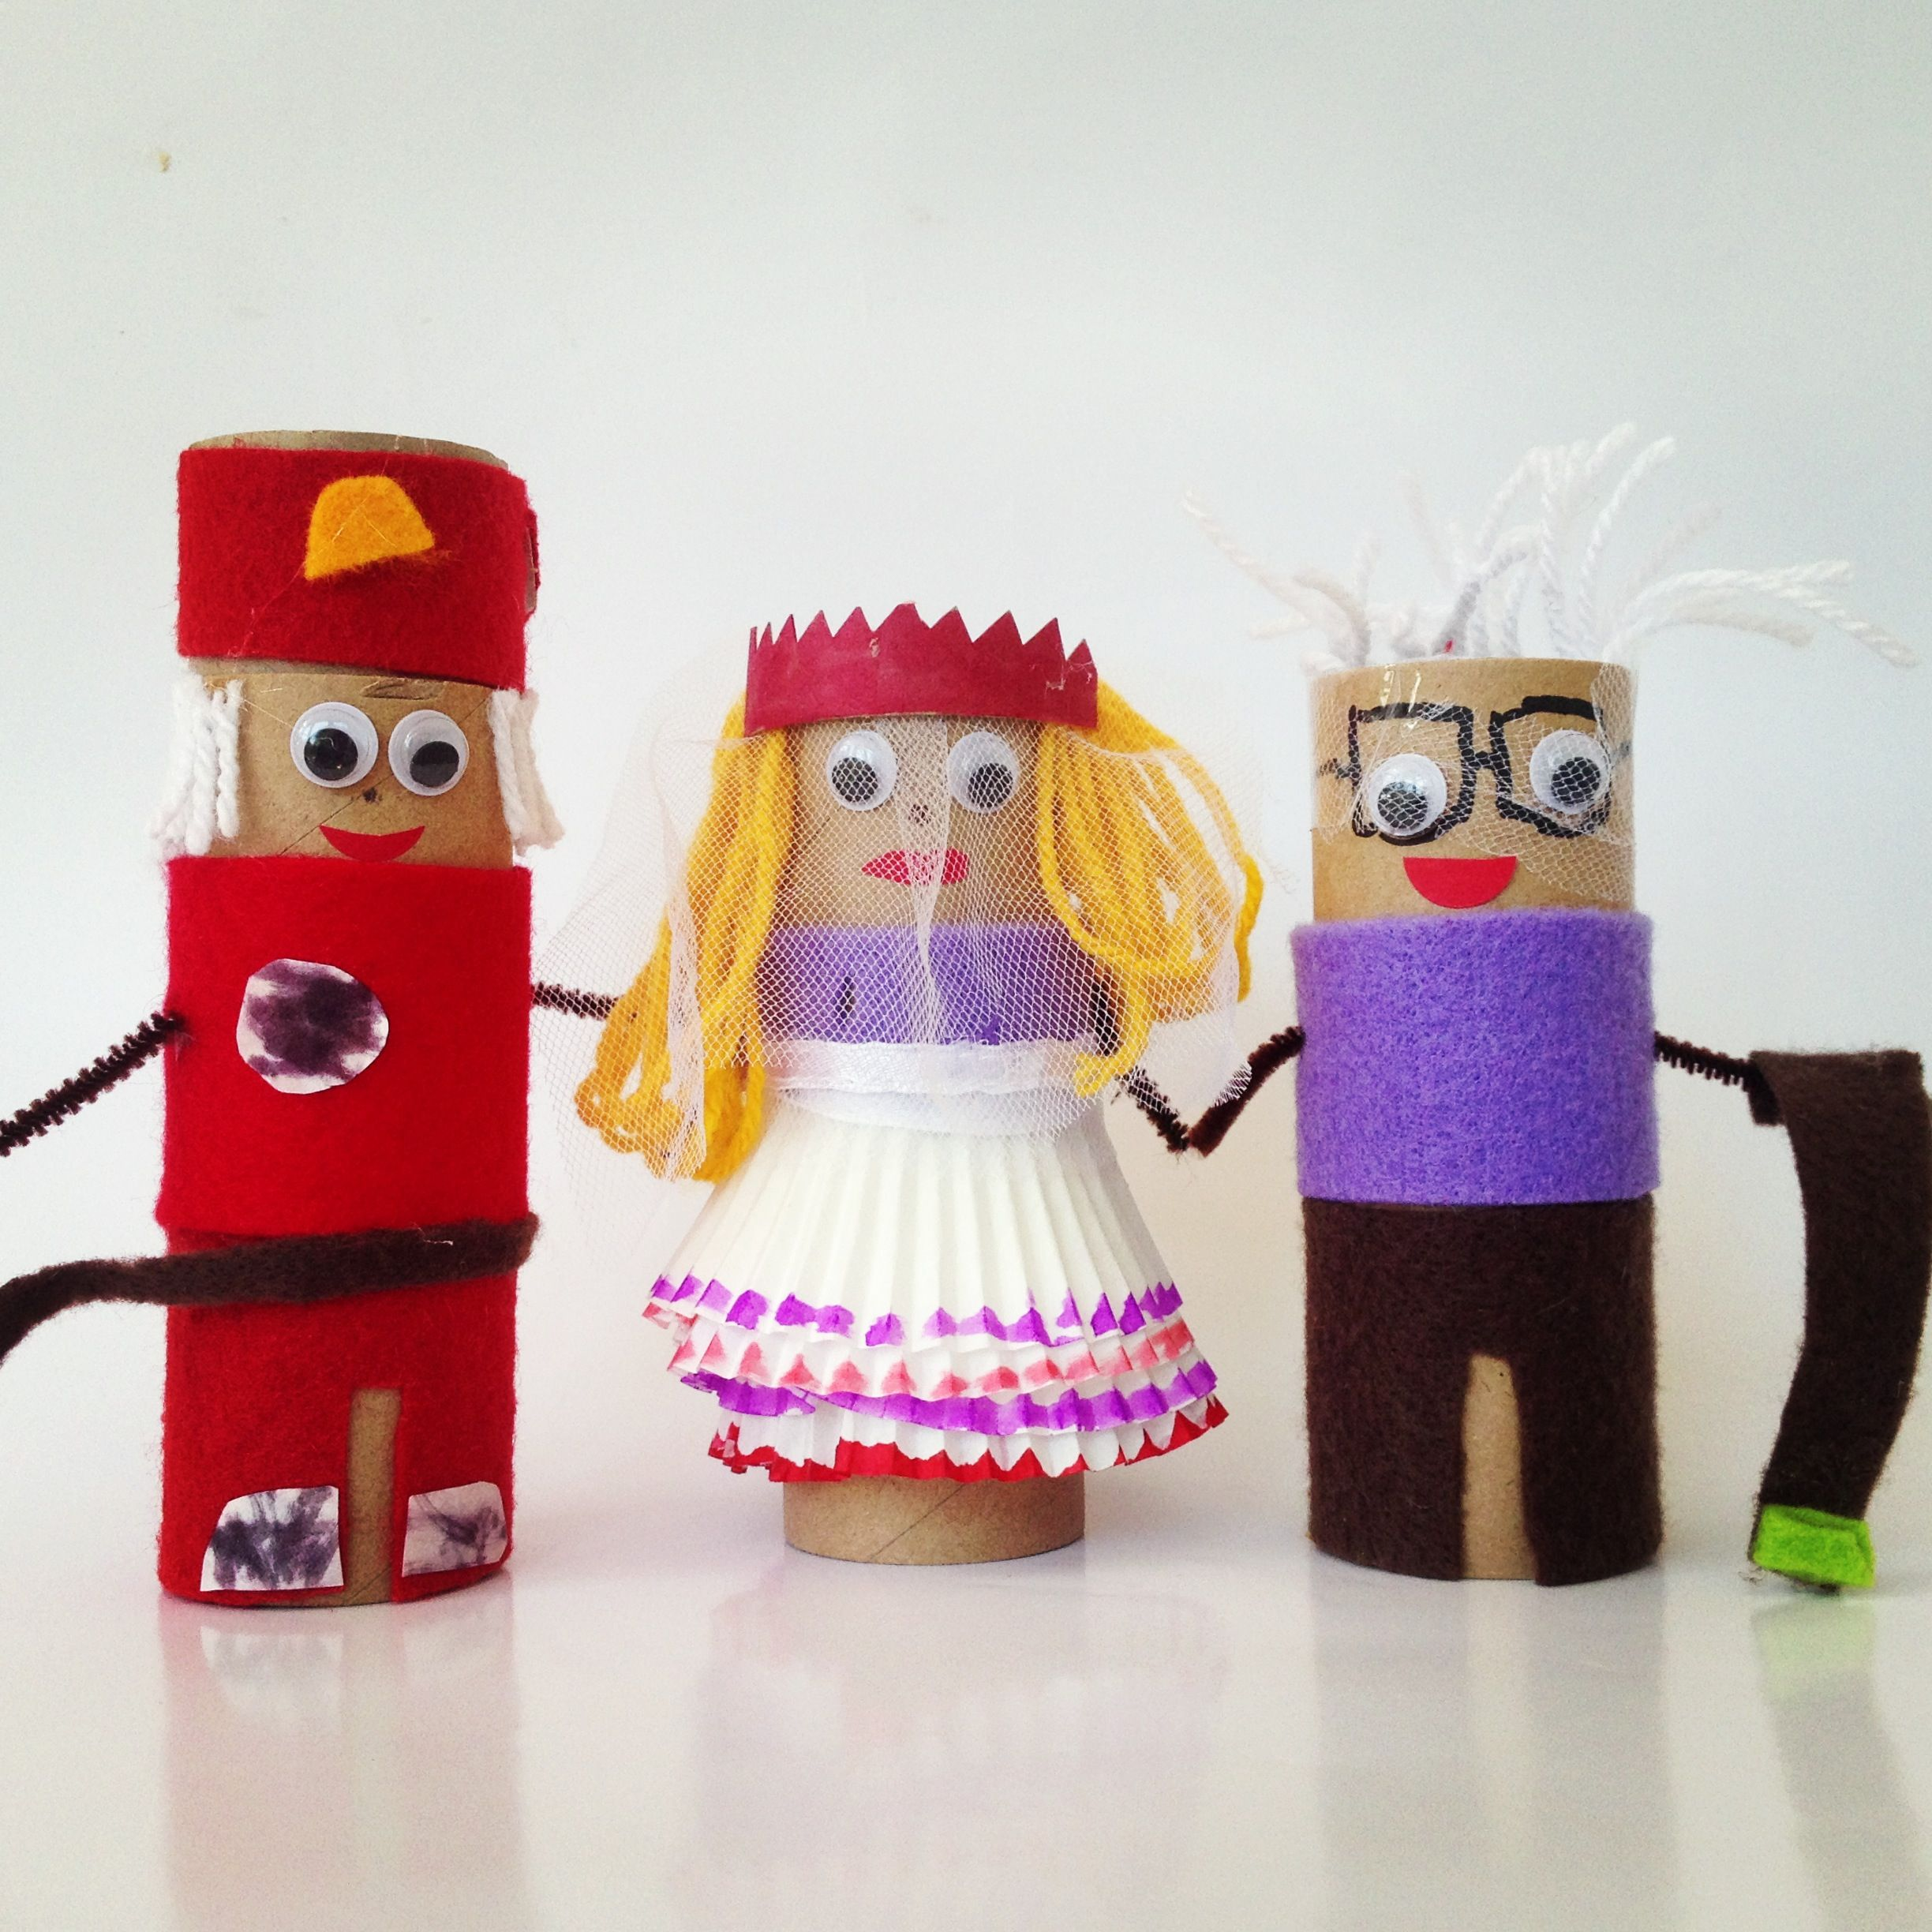 cute little toilet roll puppet characters made from scrap